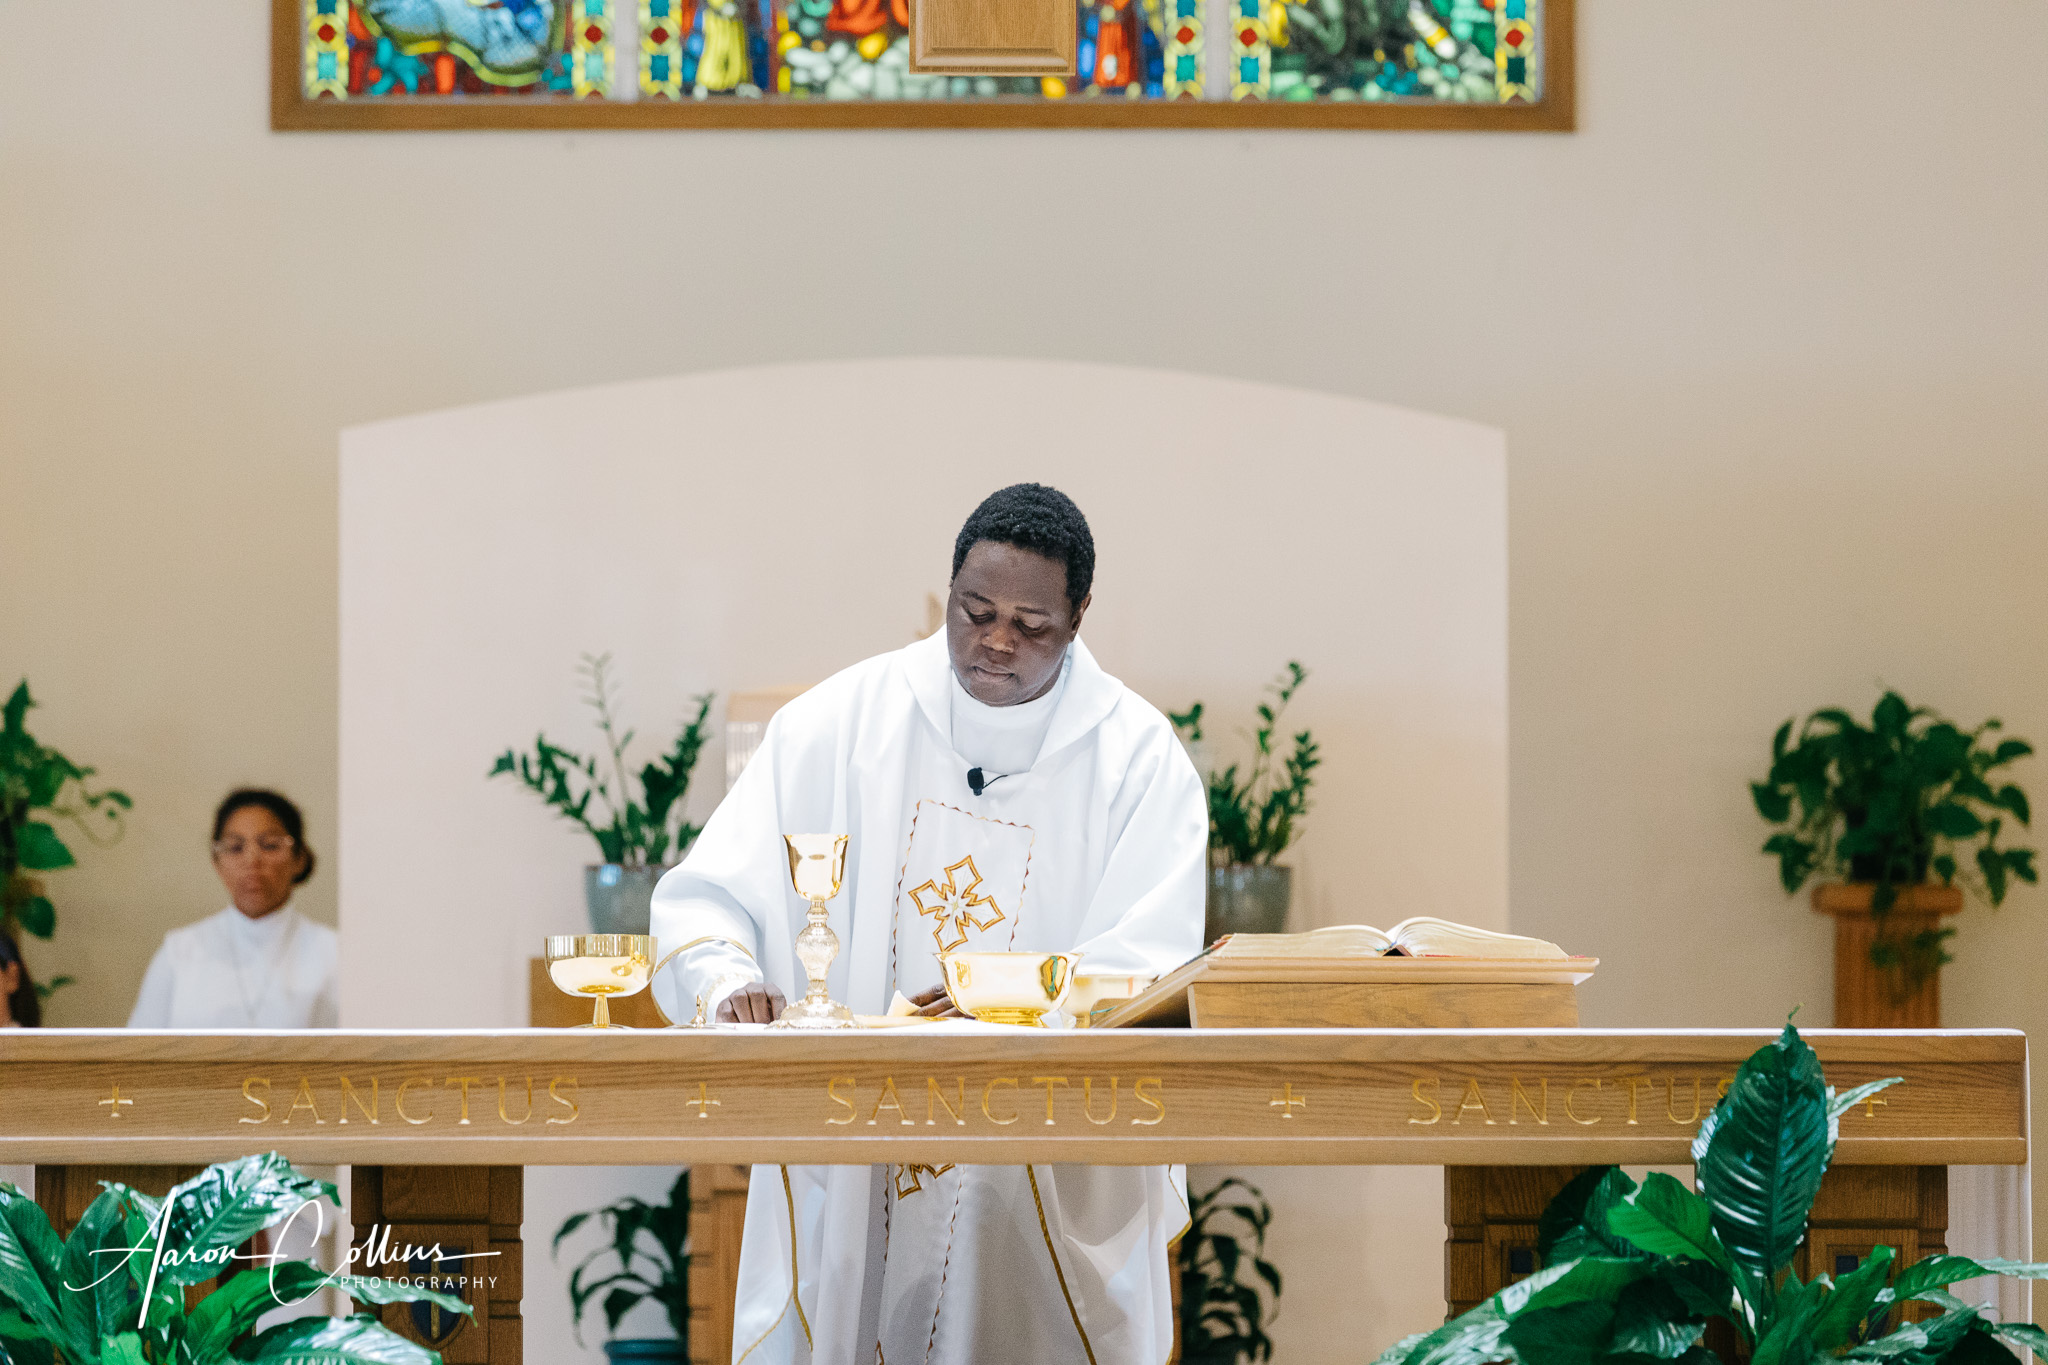 Father Charles Omolo at Saint George Parish in Worcester preparing the chalice during a wedding ceremony.